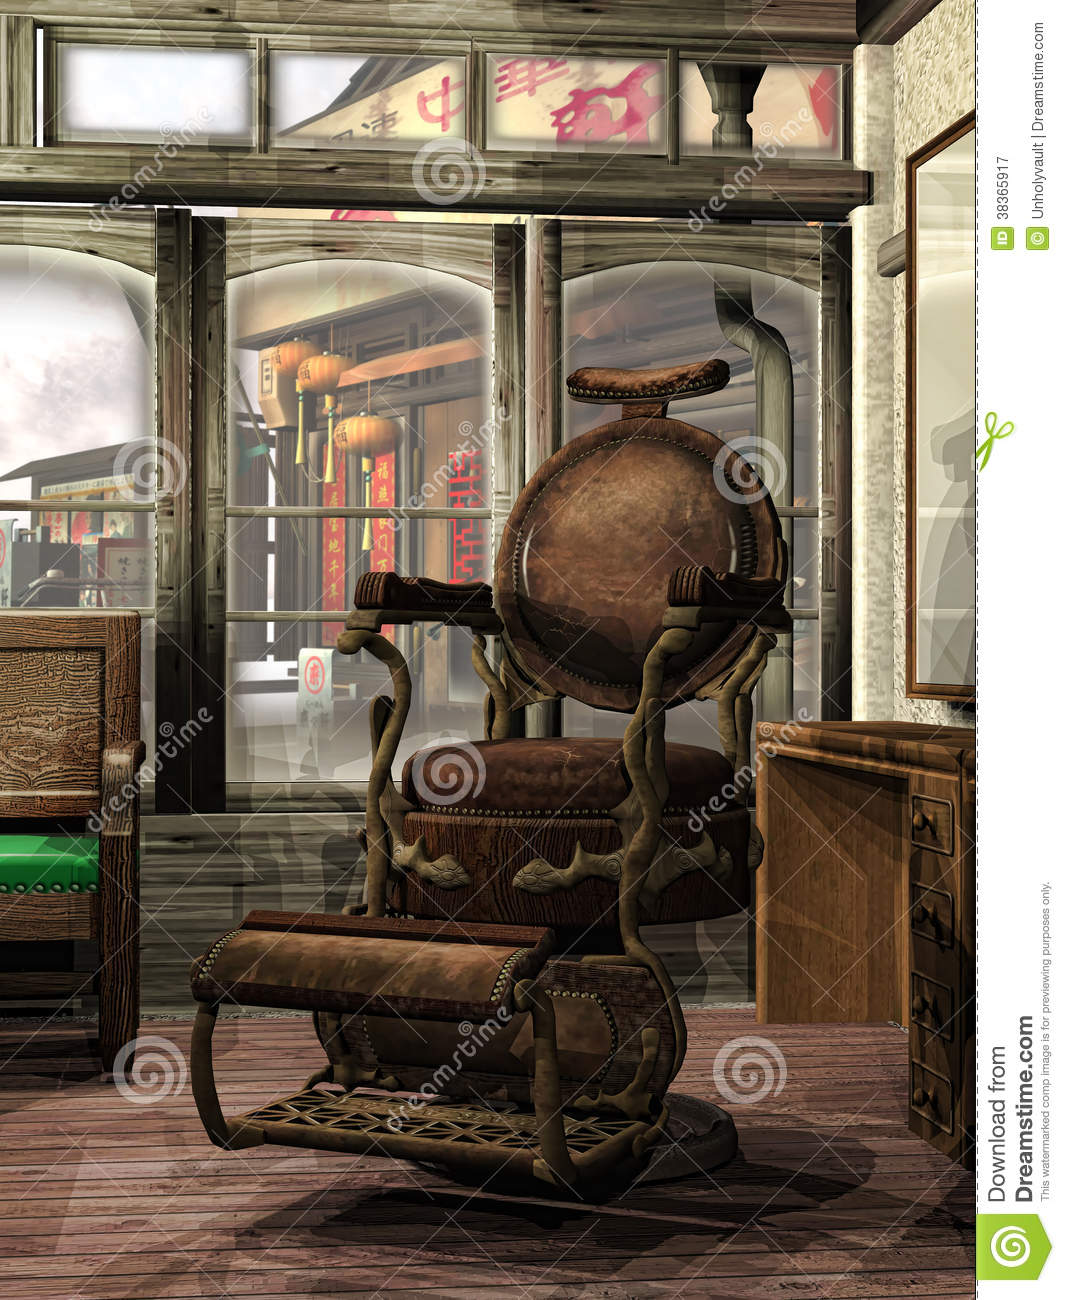 Steampunk Barber's Shop Royalty Free Stock Photography ...  Steampunk Barbe...